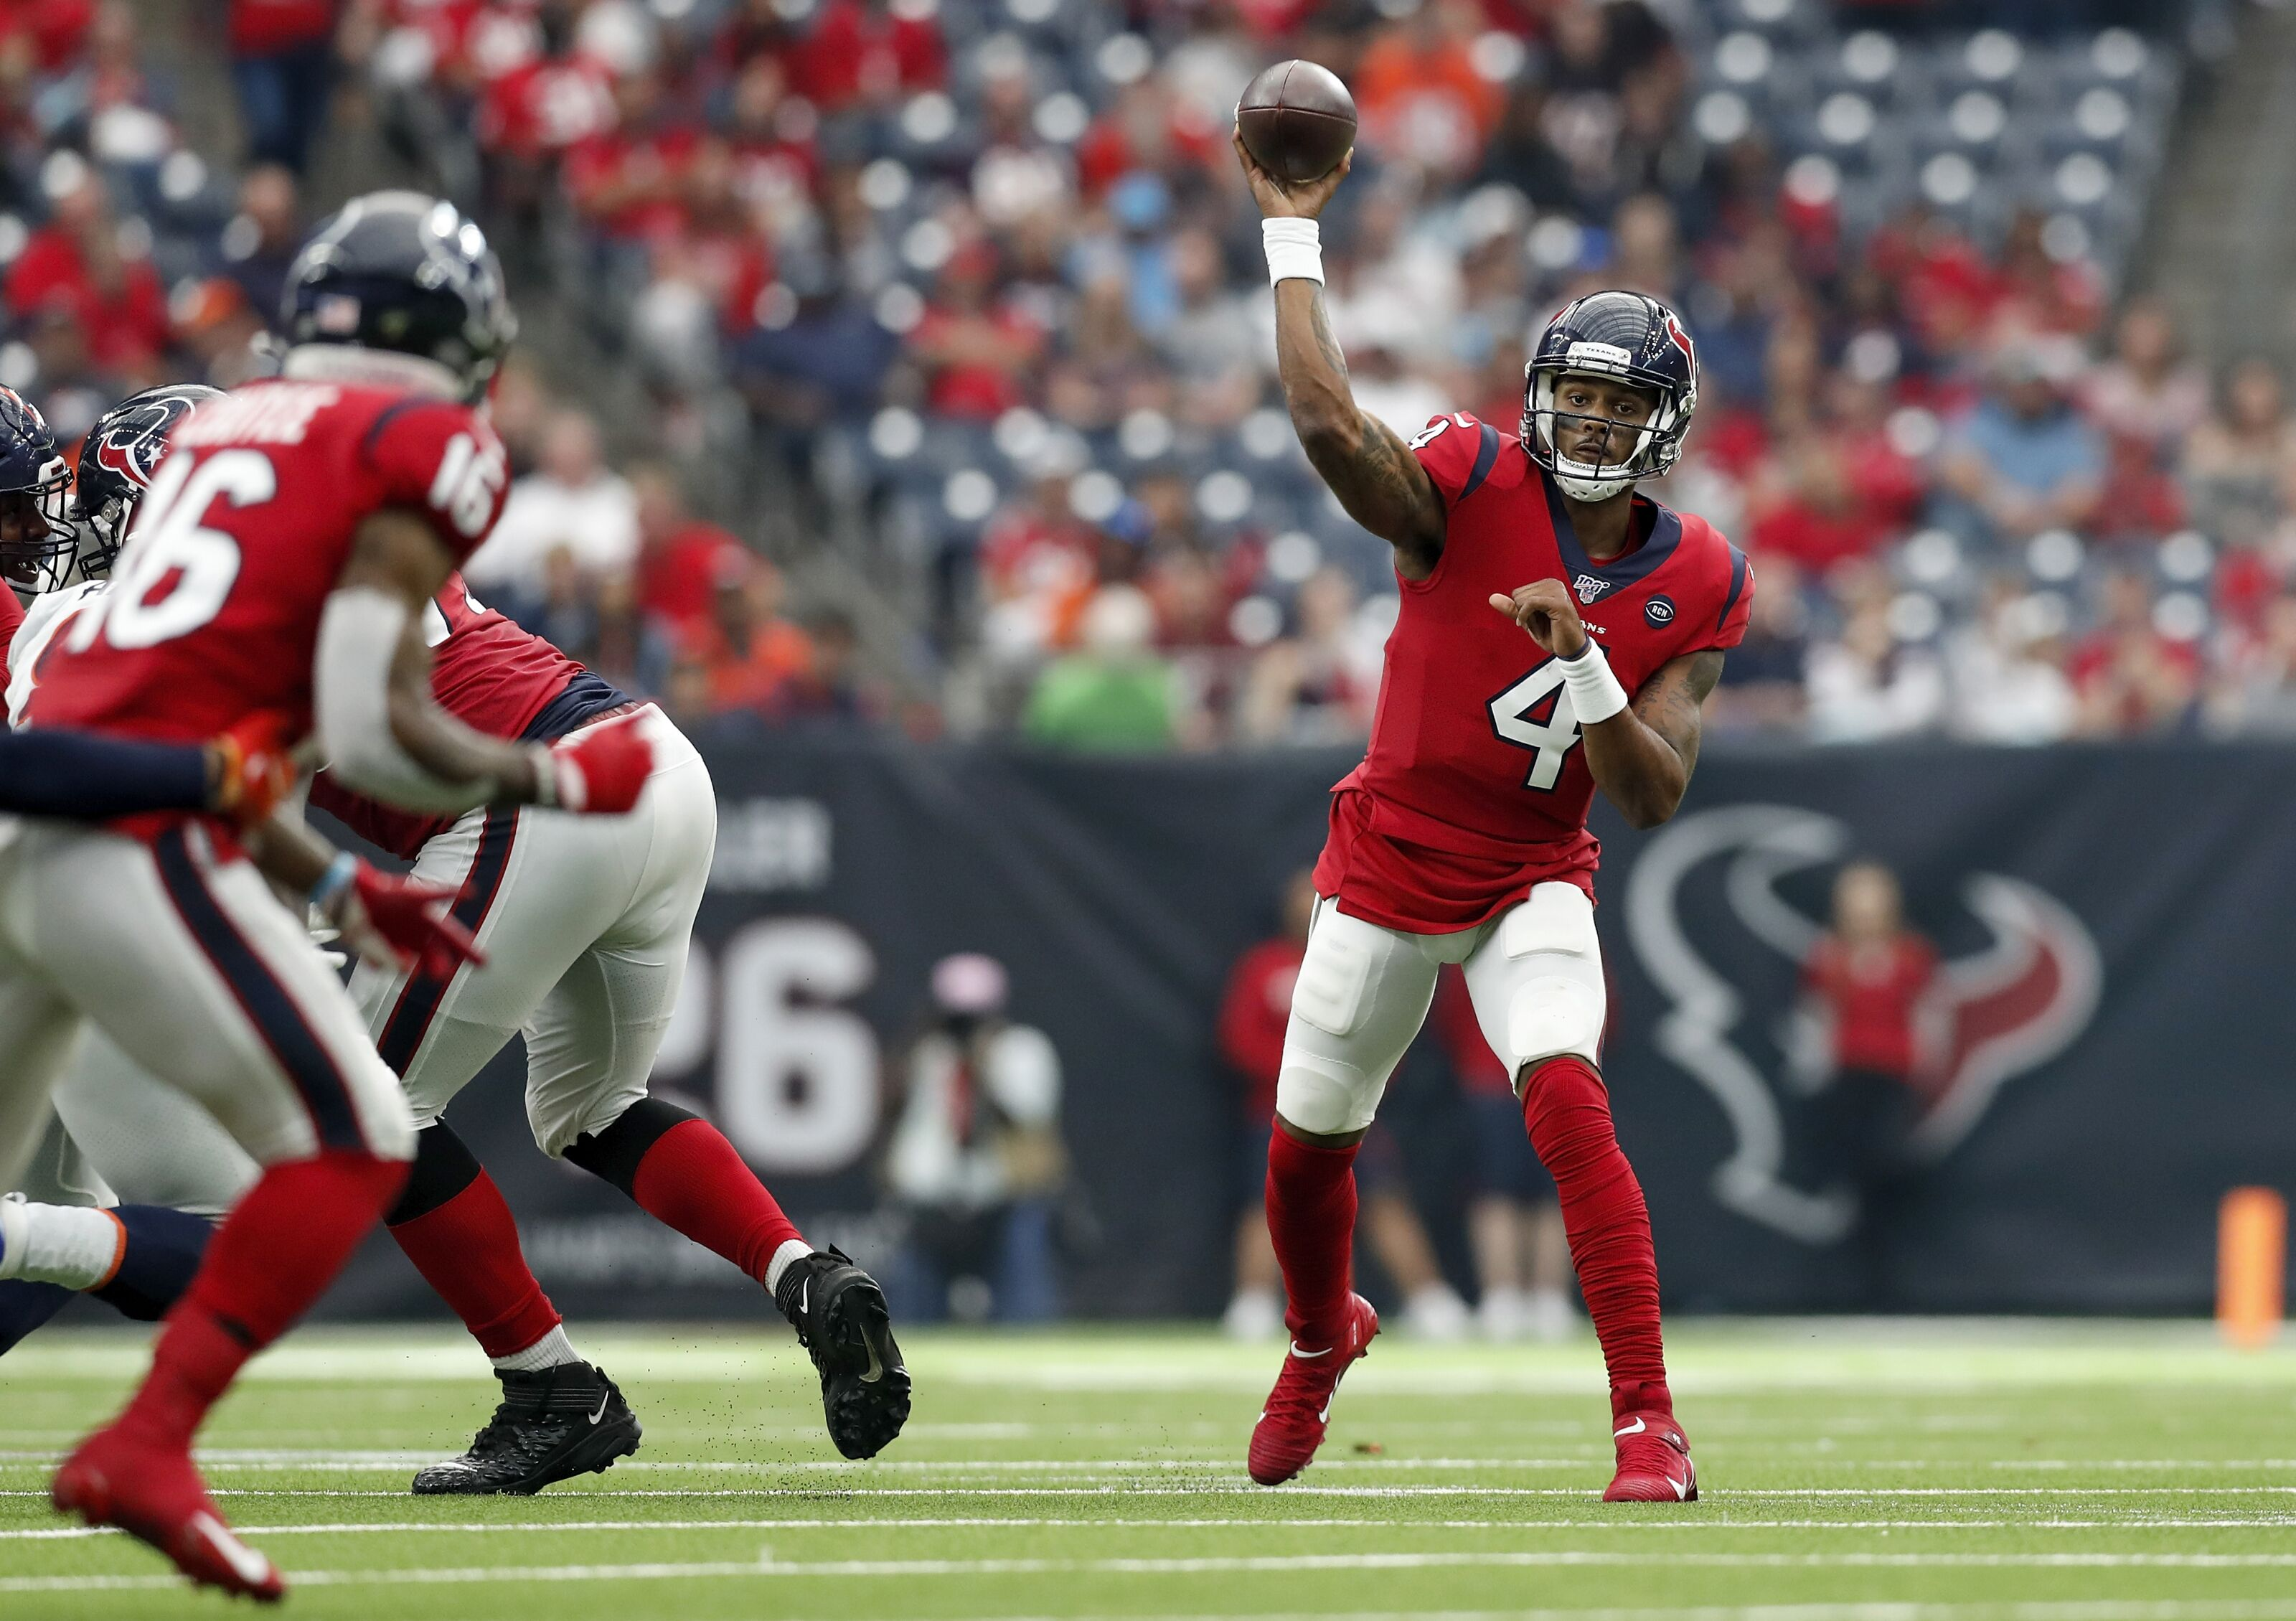 Houston Texans: How will Deshaun Watson clean up the mess in Week 15?